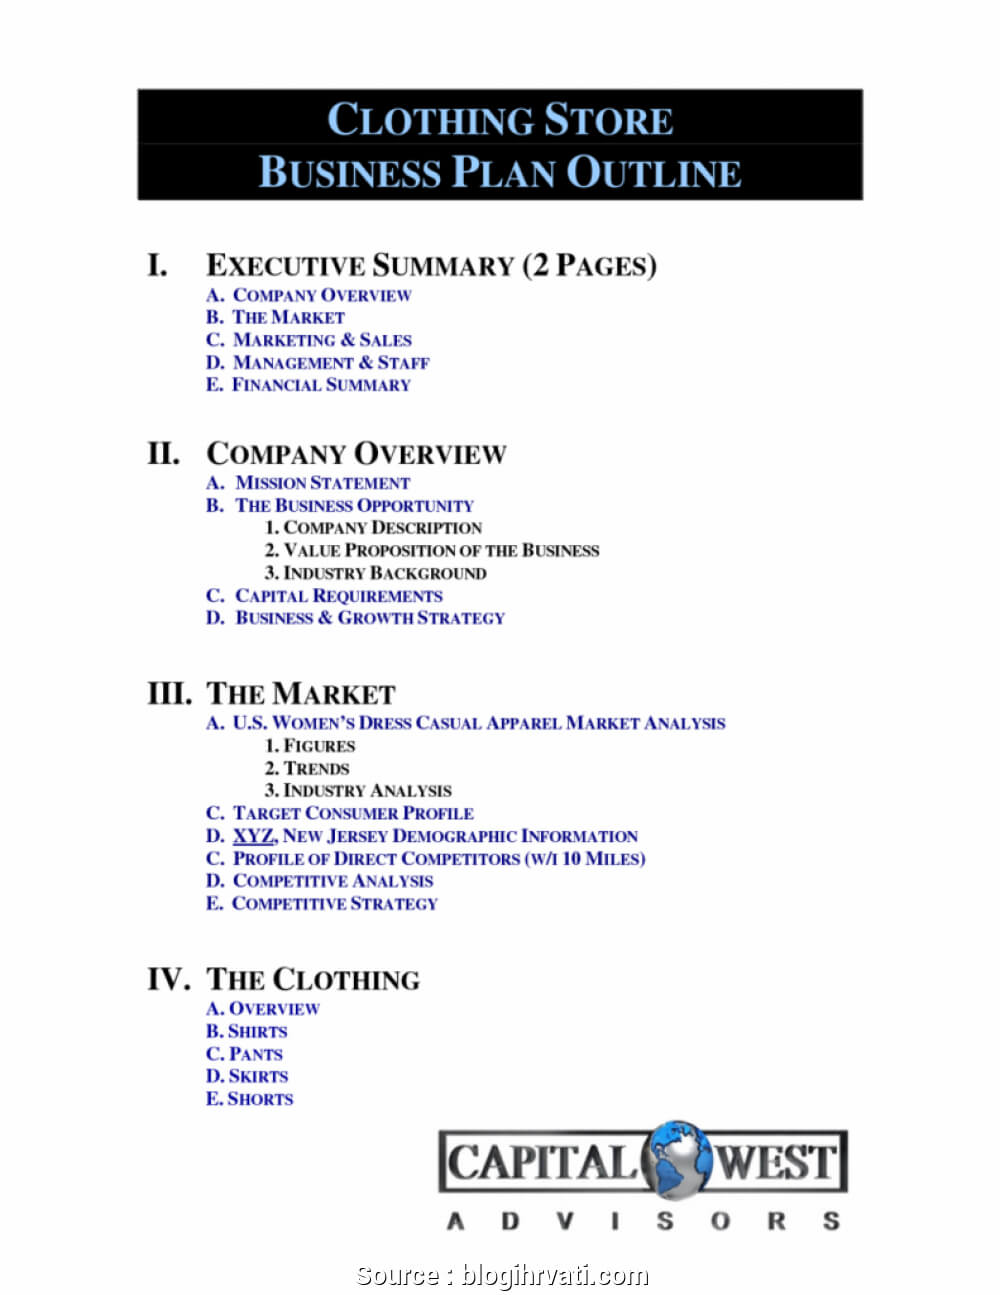 Commercial Cleaning Company Business Plan Template Sample Regarding Business Plan Template For Service Company